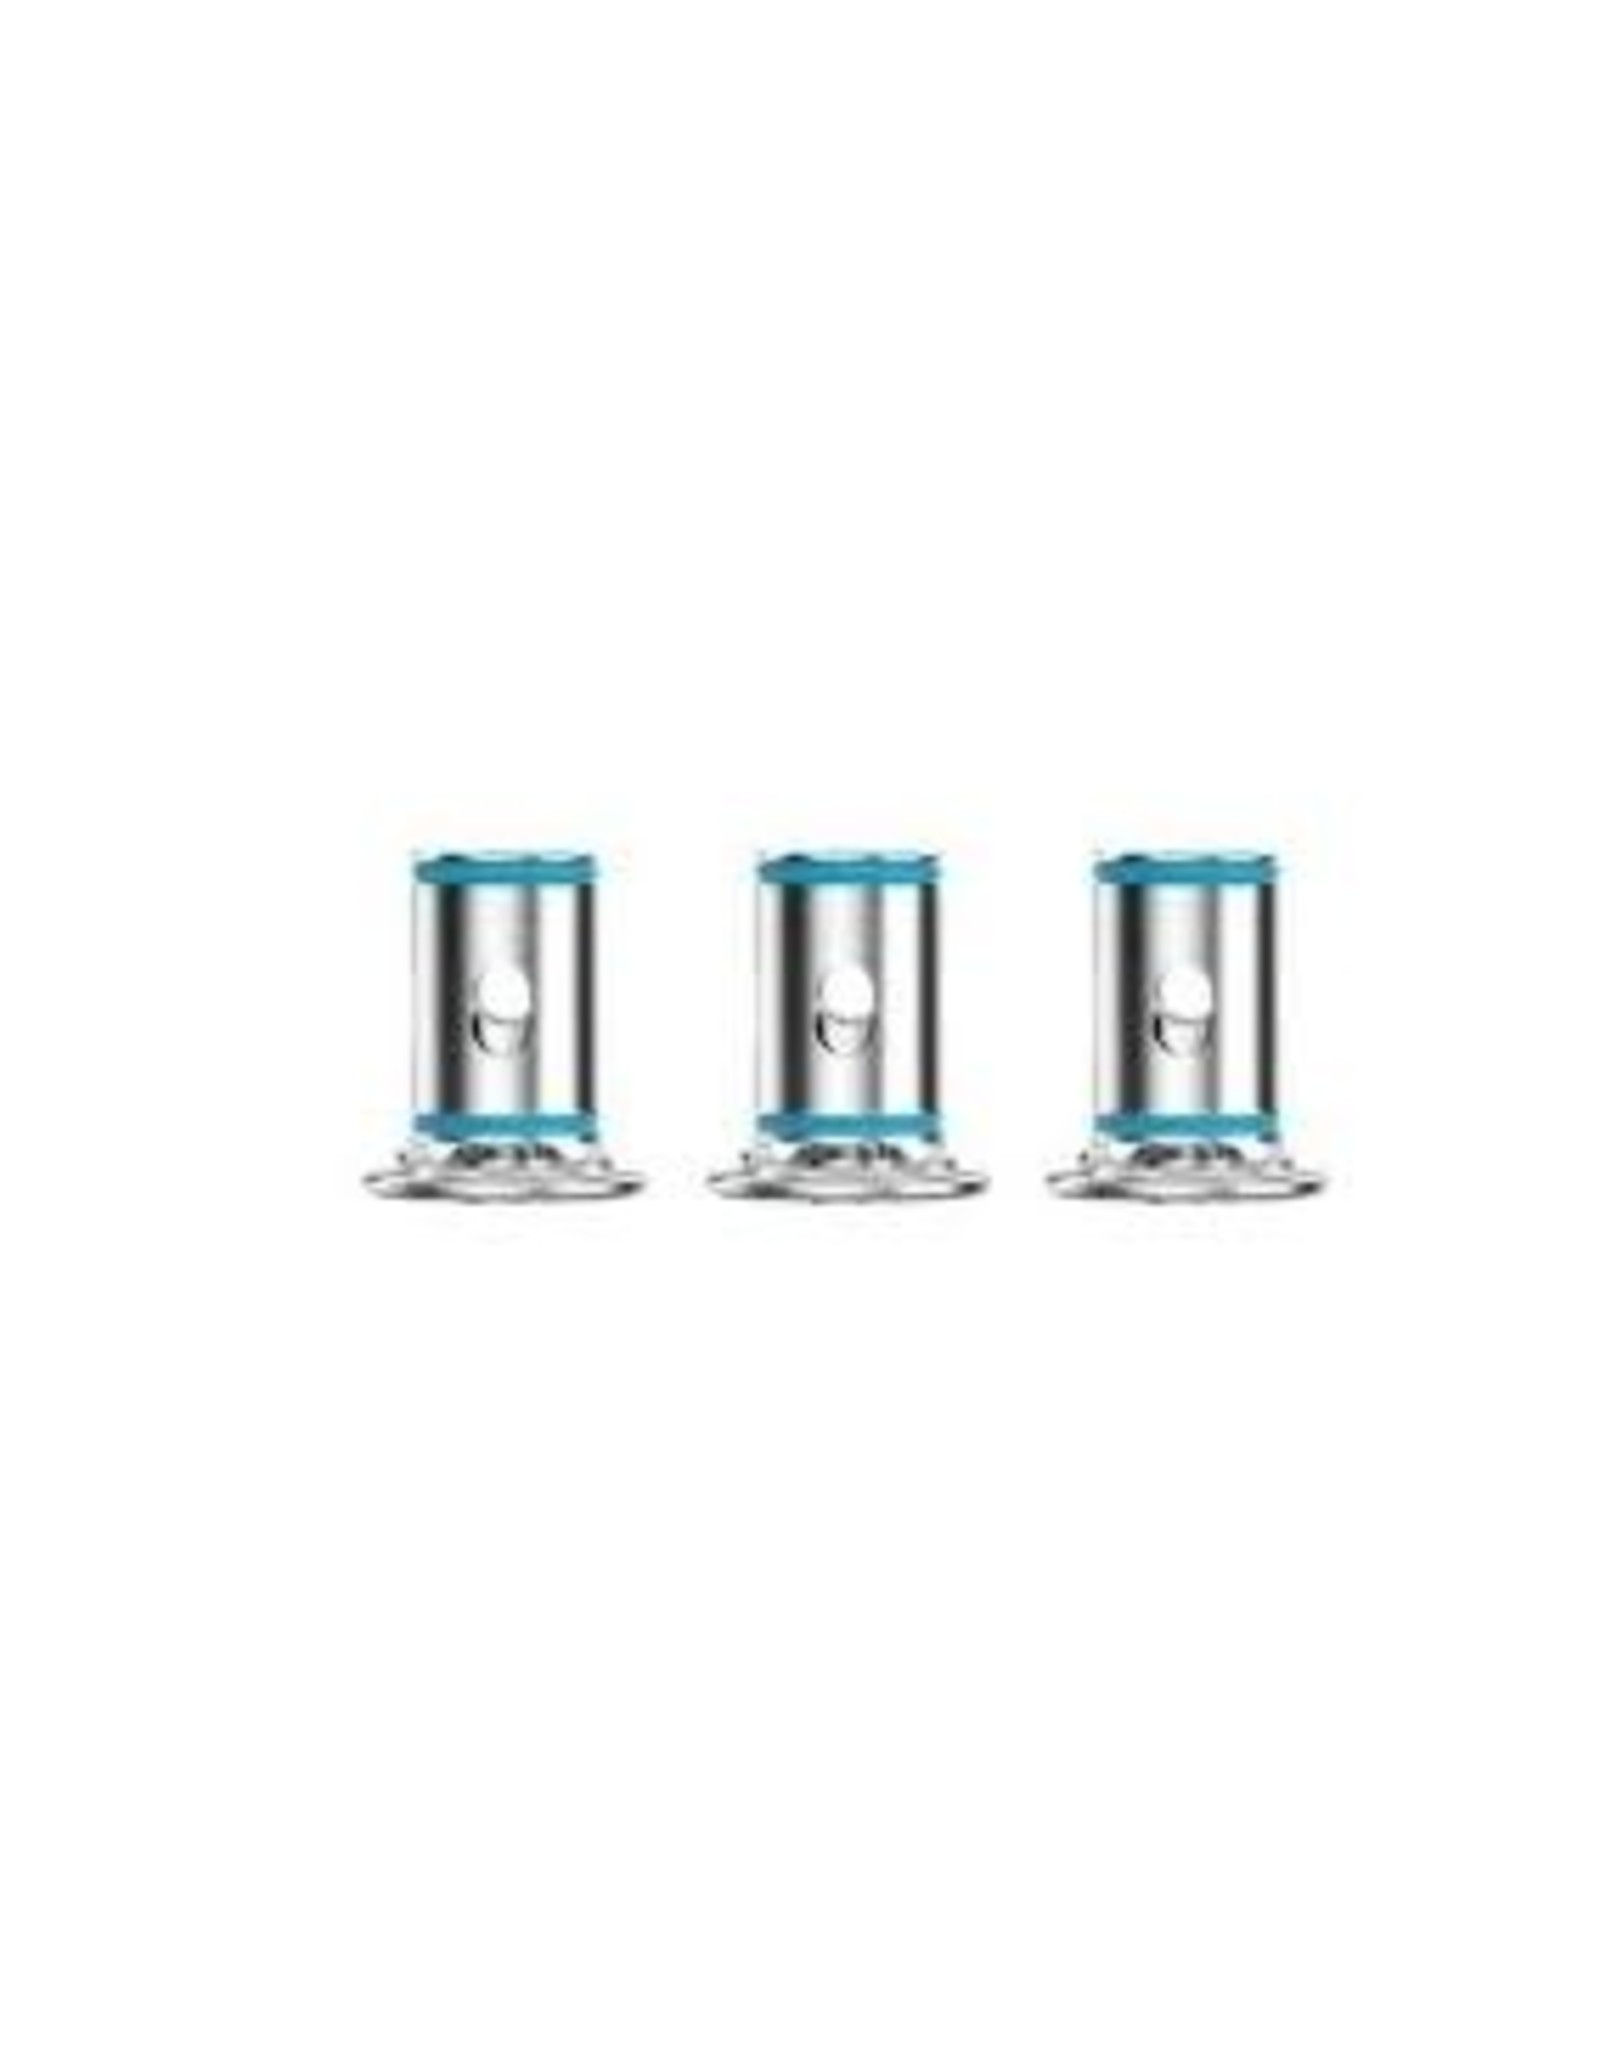 ASPIRE ASPIRE CLOUDFLASK MESH COIL 0.25 OHM (3PACK) single